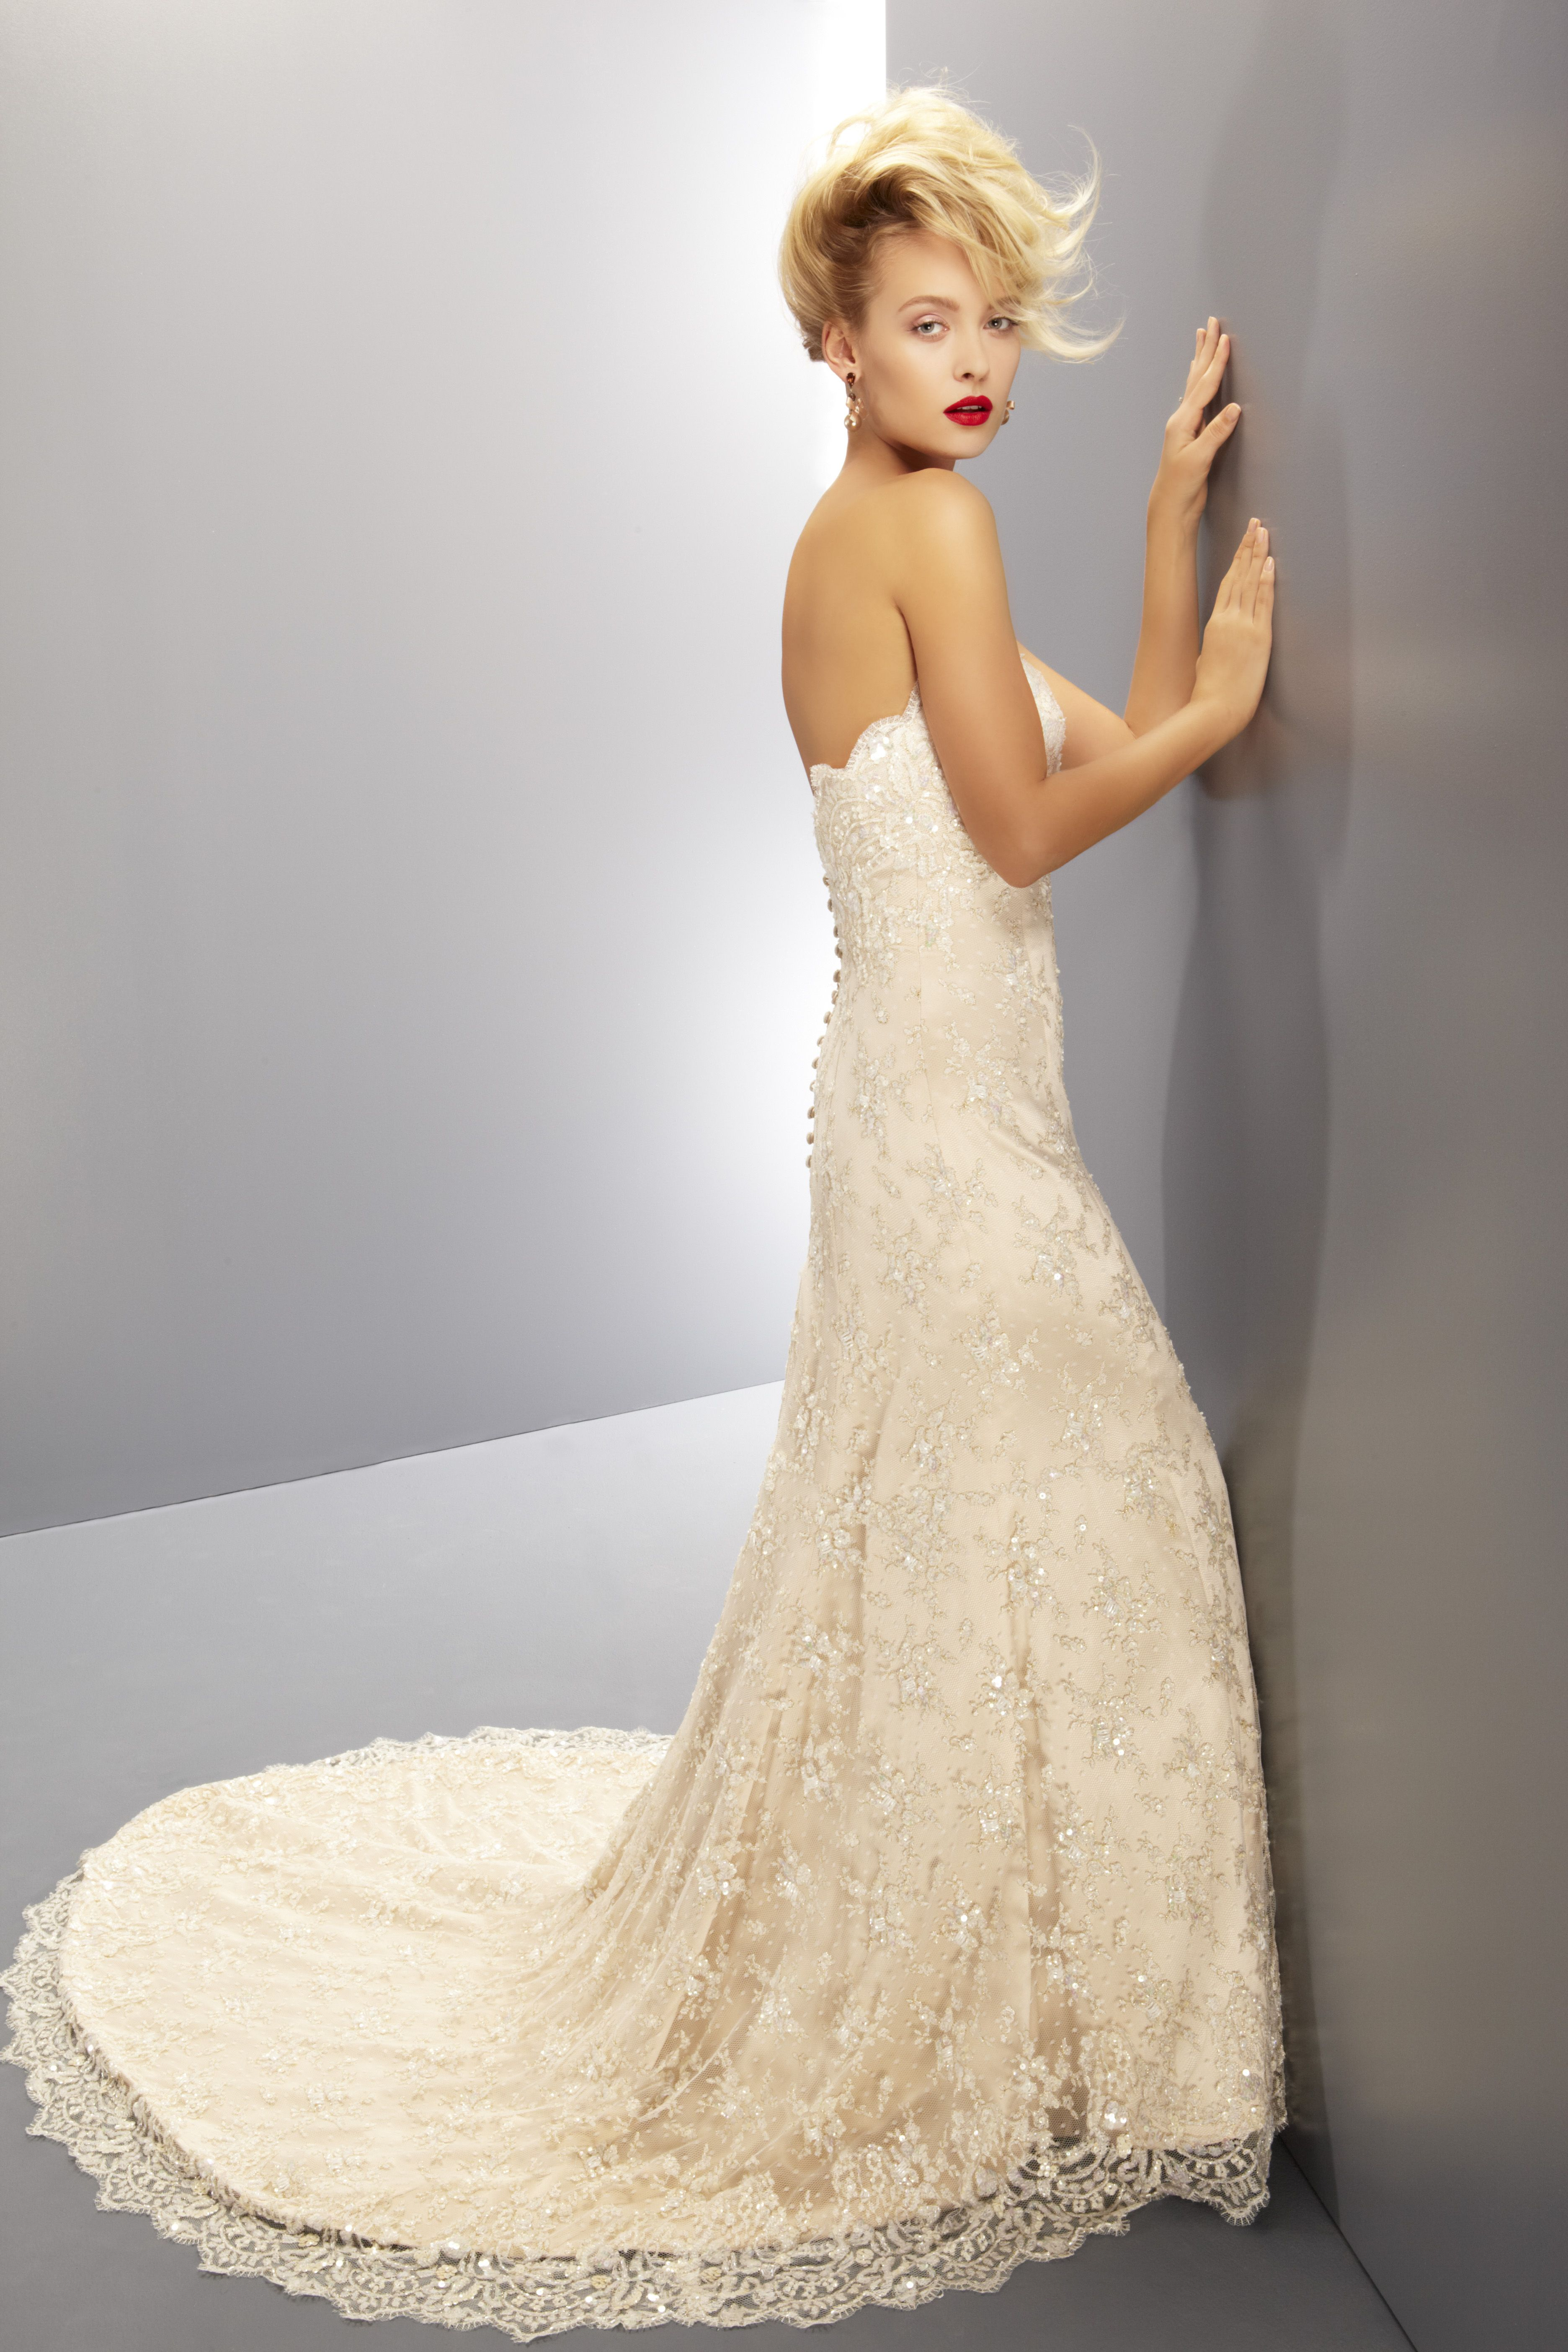 Bedazzled Strapless Gown With Boned Bodice And Sweetheart Neckline Skirt Panning Out From The Lower Hip Forming A Flattering Silhouette